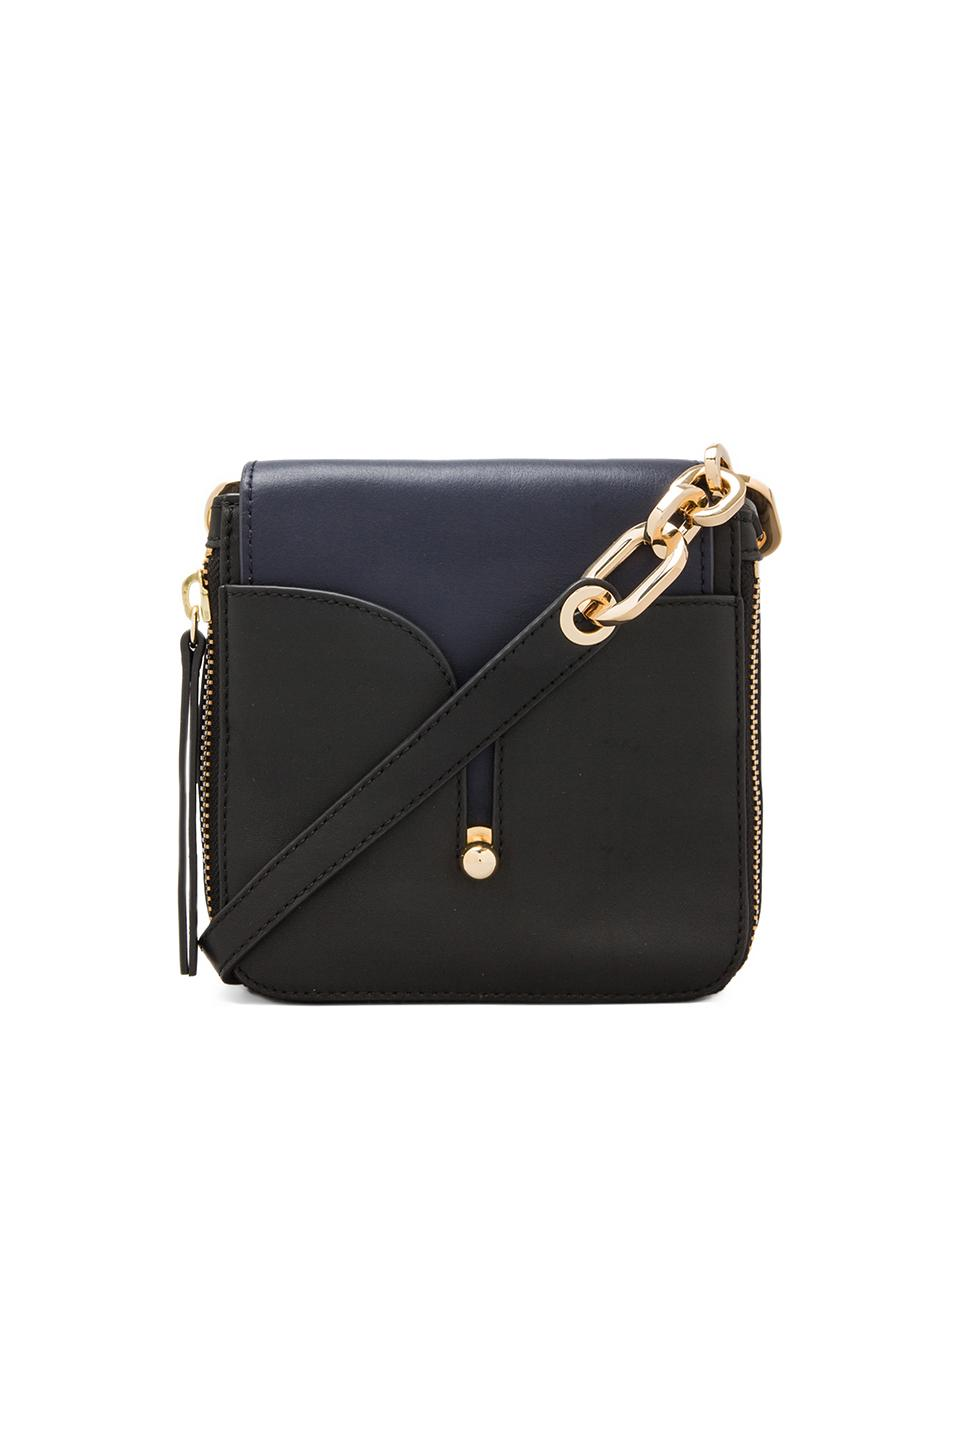 Pour La Victoire Crossbody Bag in Black/Navy